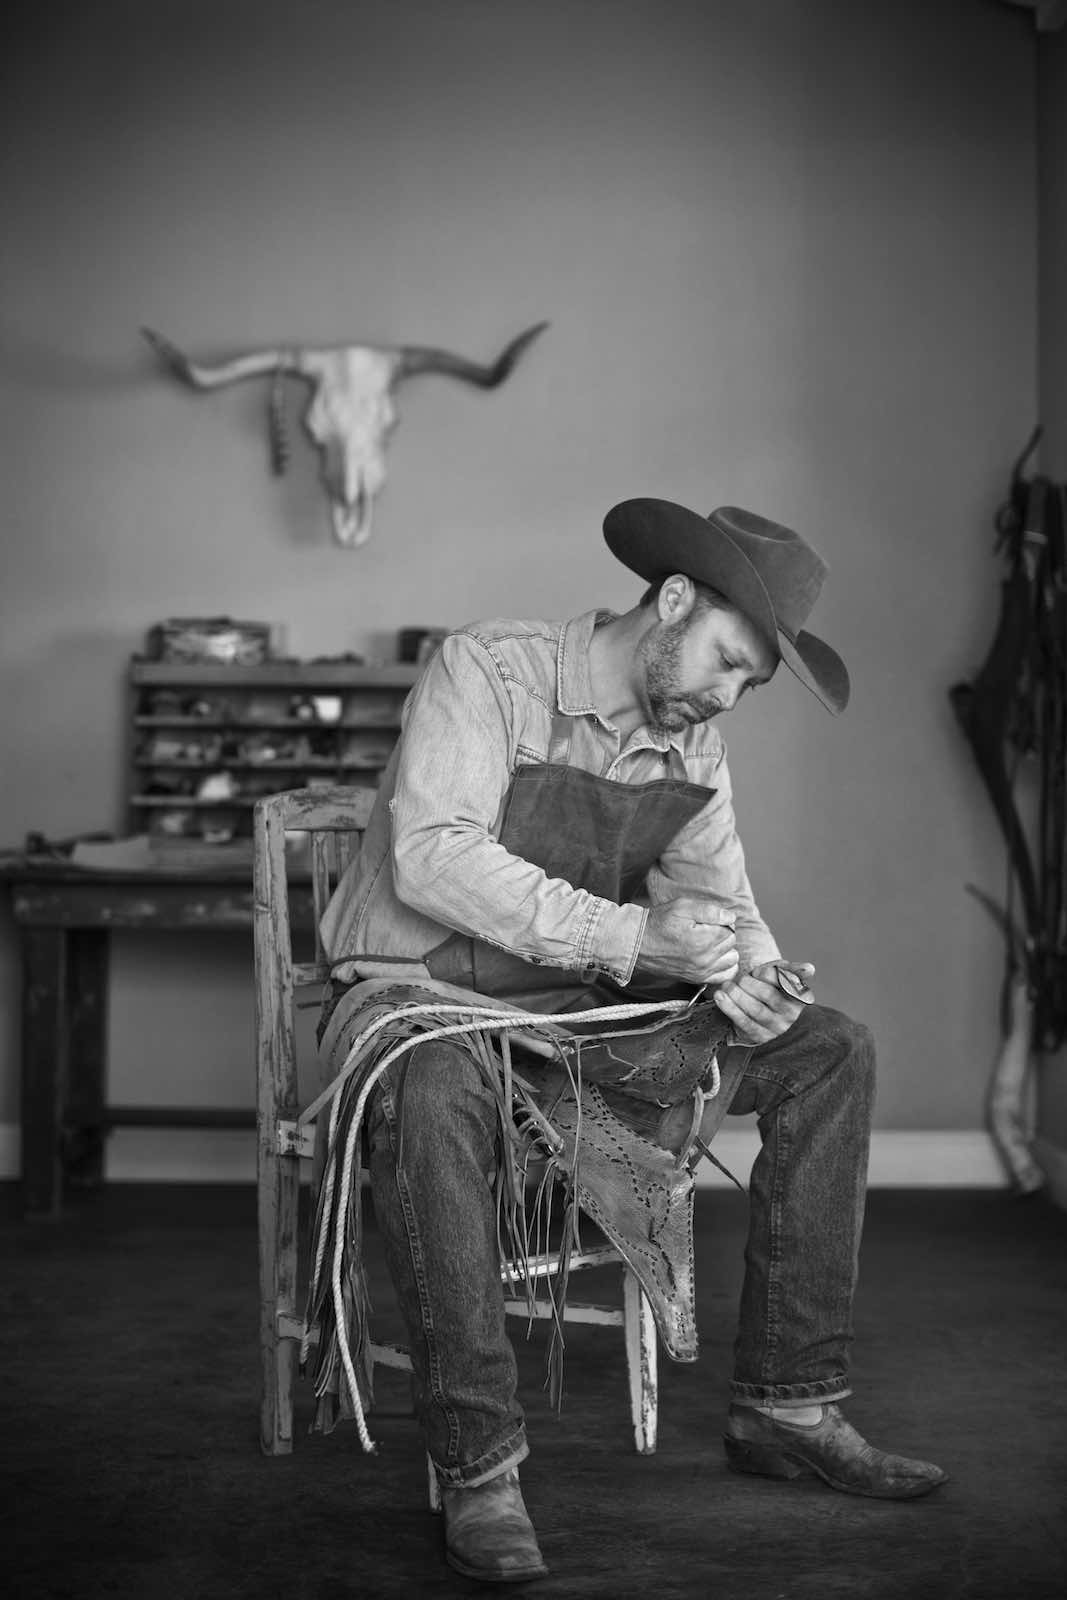 Leather worker sitting, working on a piece, shot in B&W.